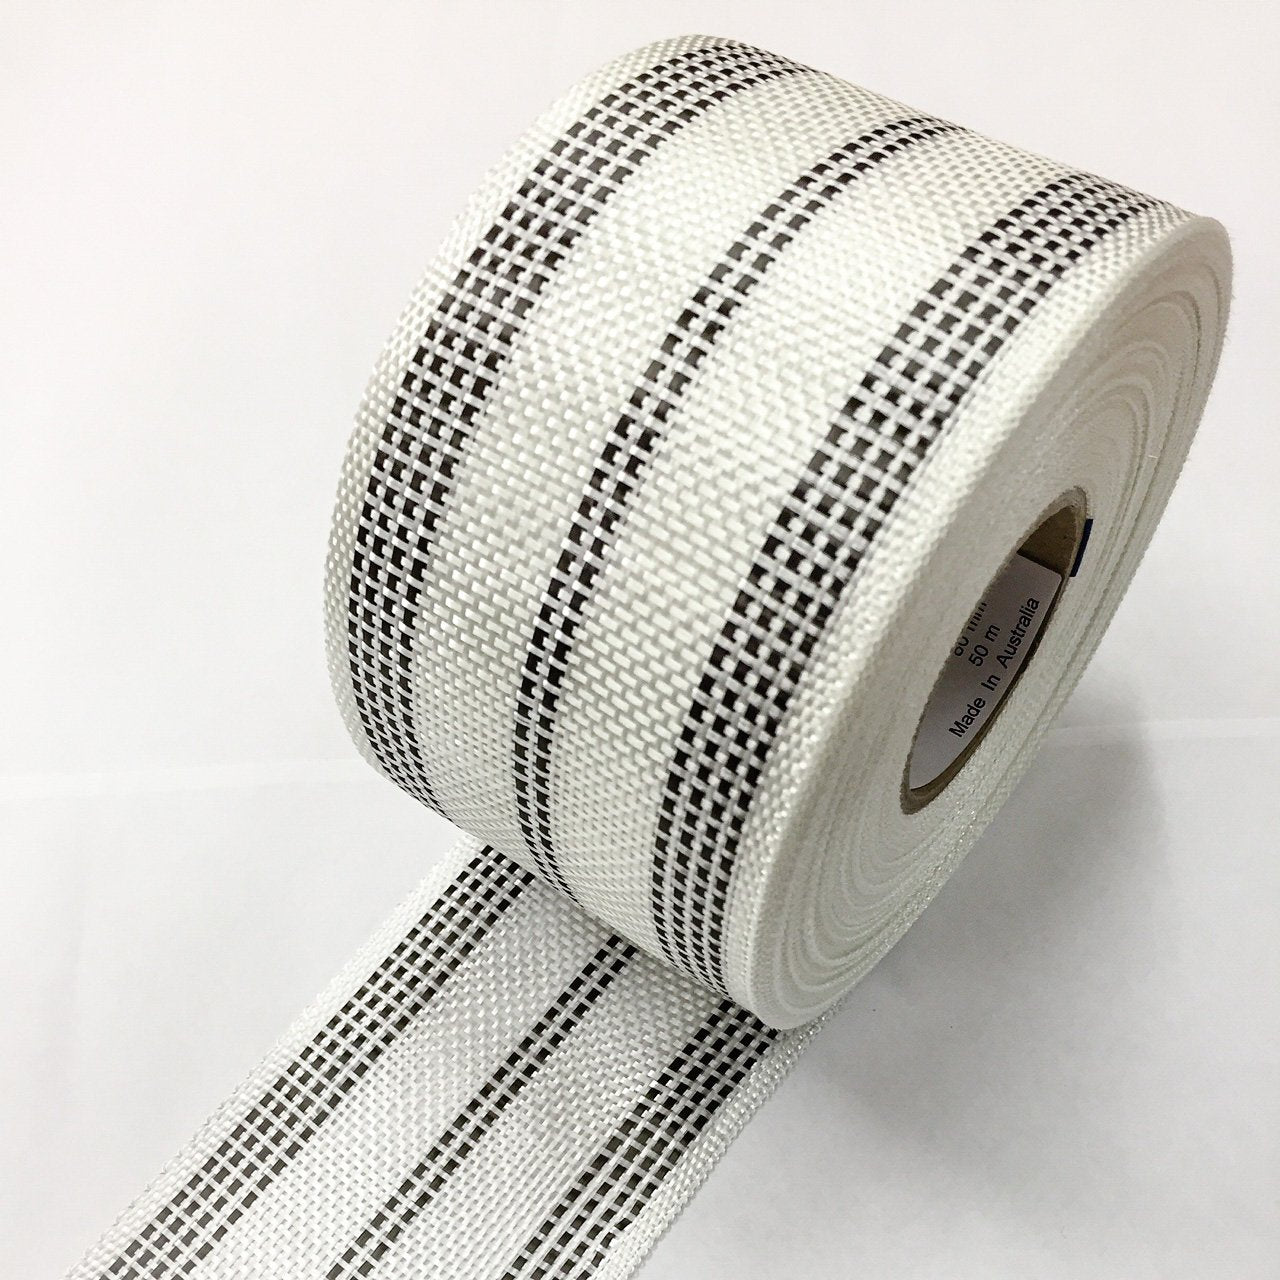 10 Strand Carbon Rail Tape